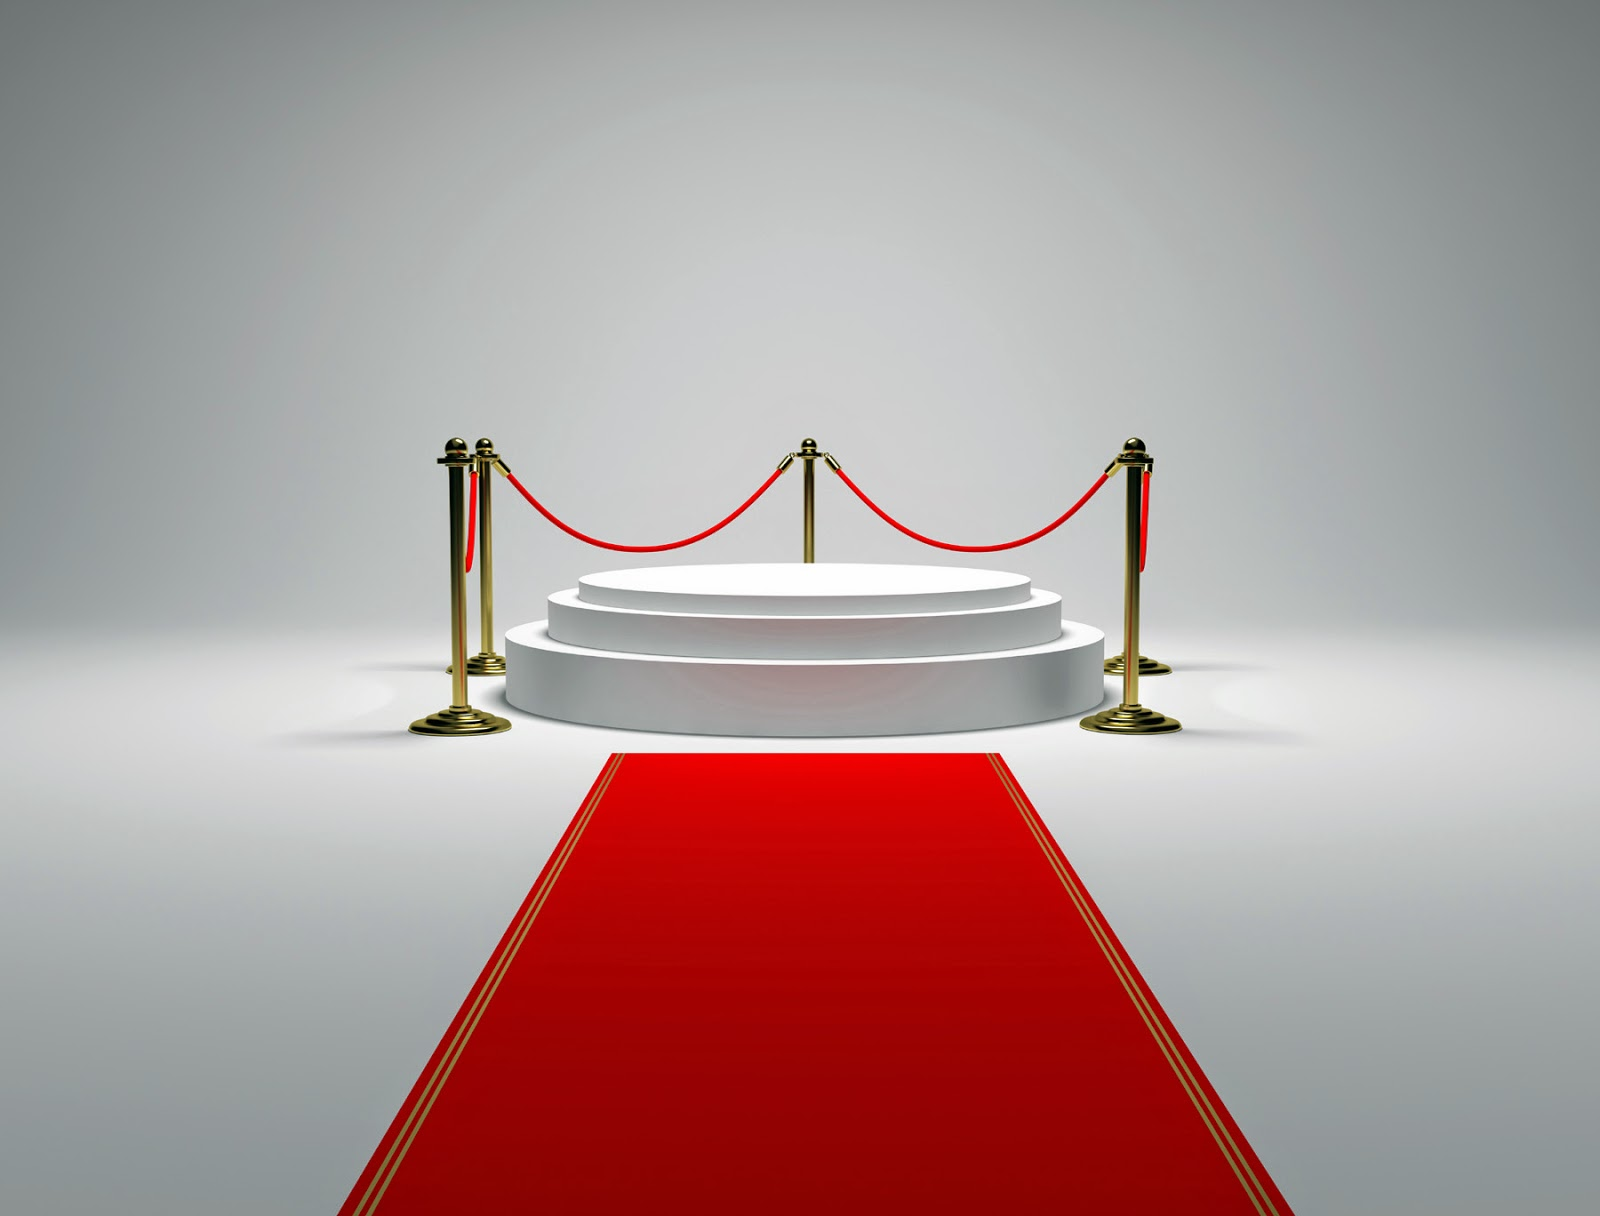 Circular booth with guardrails on the red carpet  wallpaper